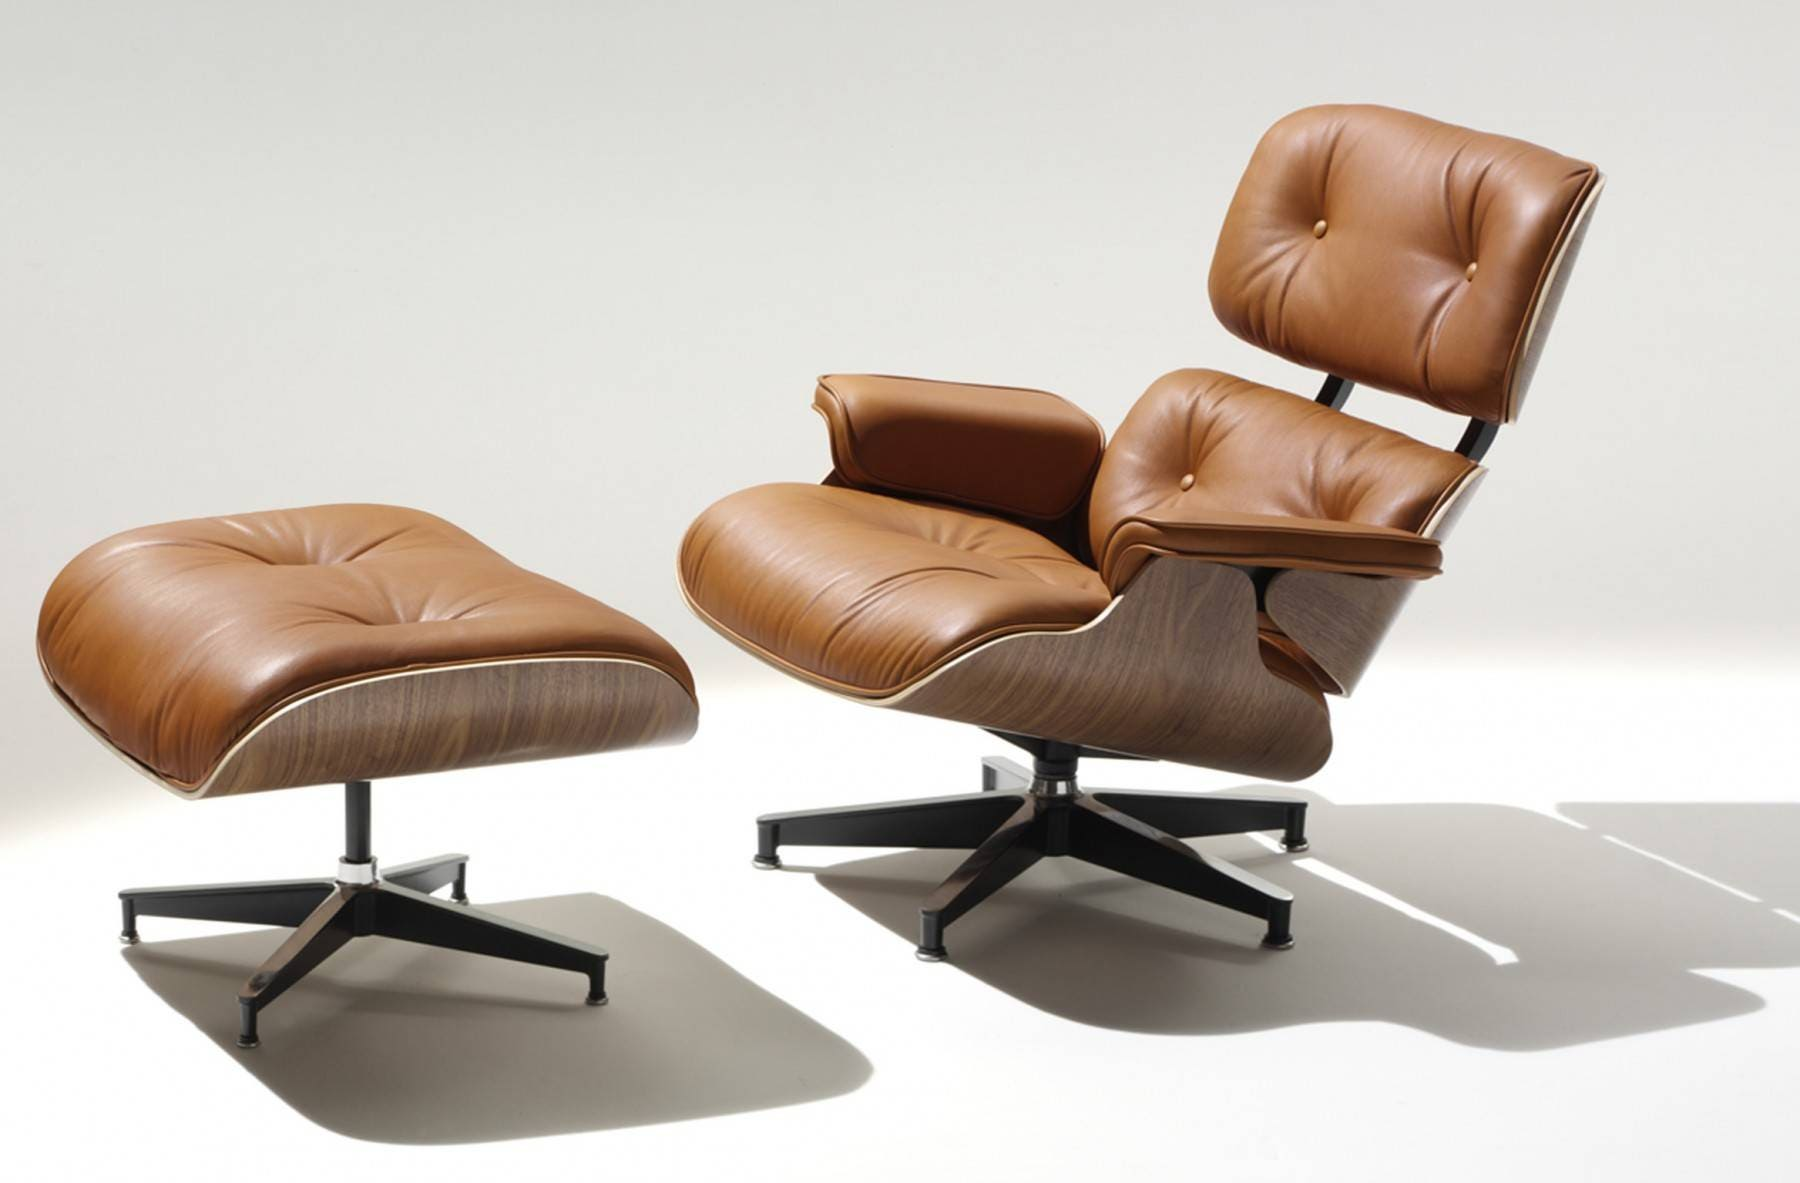 miller chair herman lounge enpundit by eames image